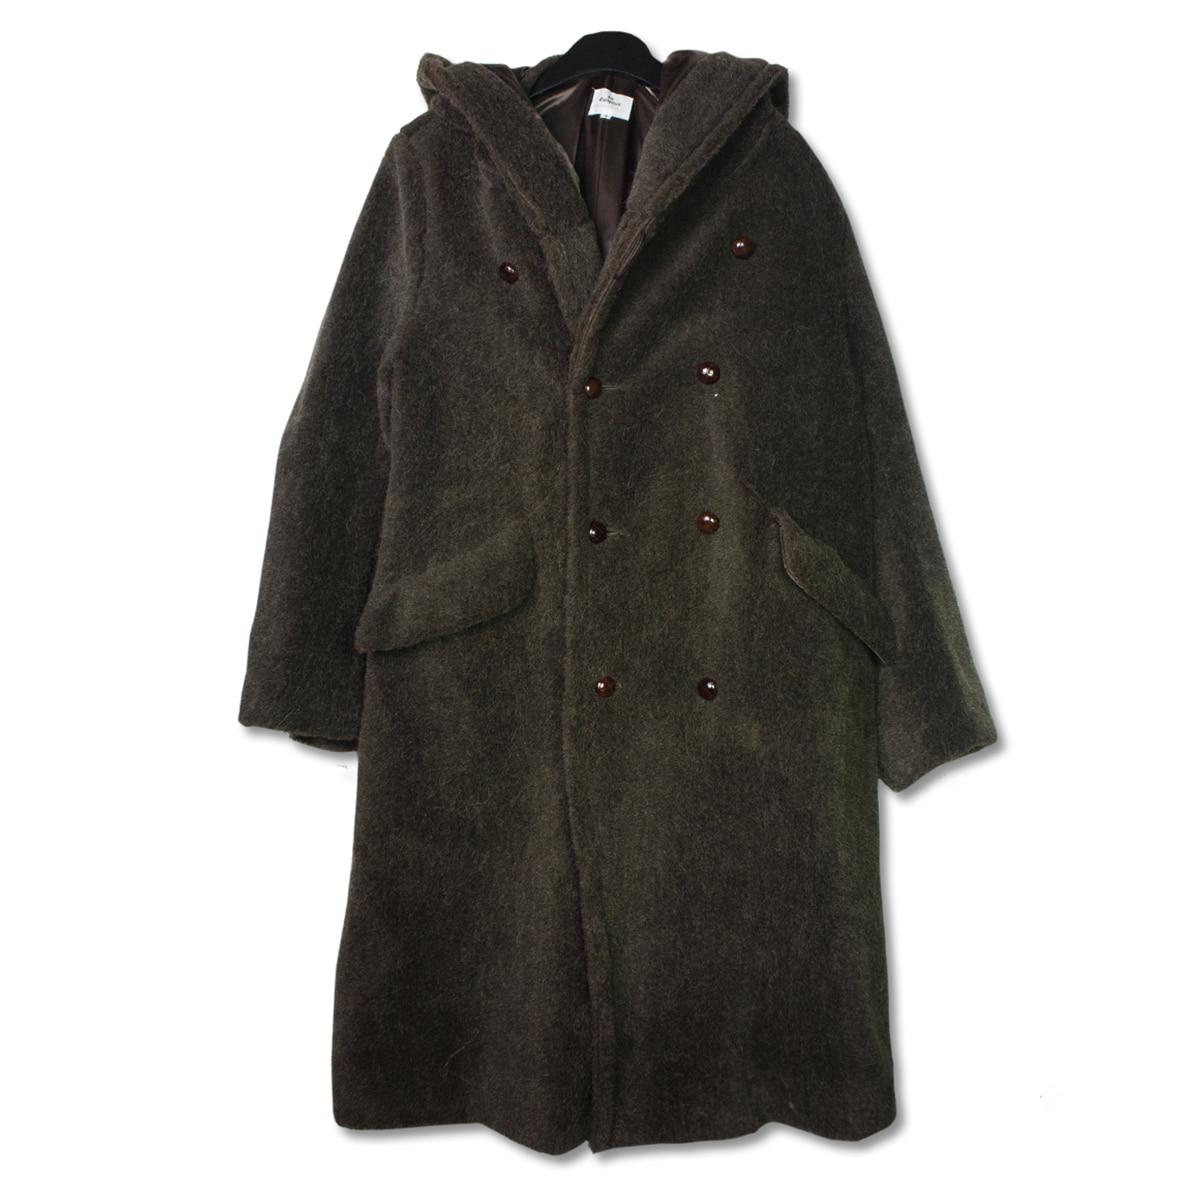 [HAVERSACK] BEAR COAT 'OLIVE BROWN'